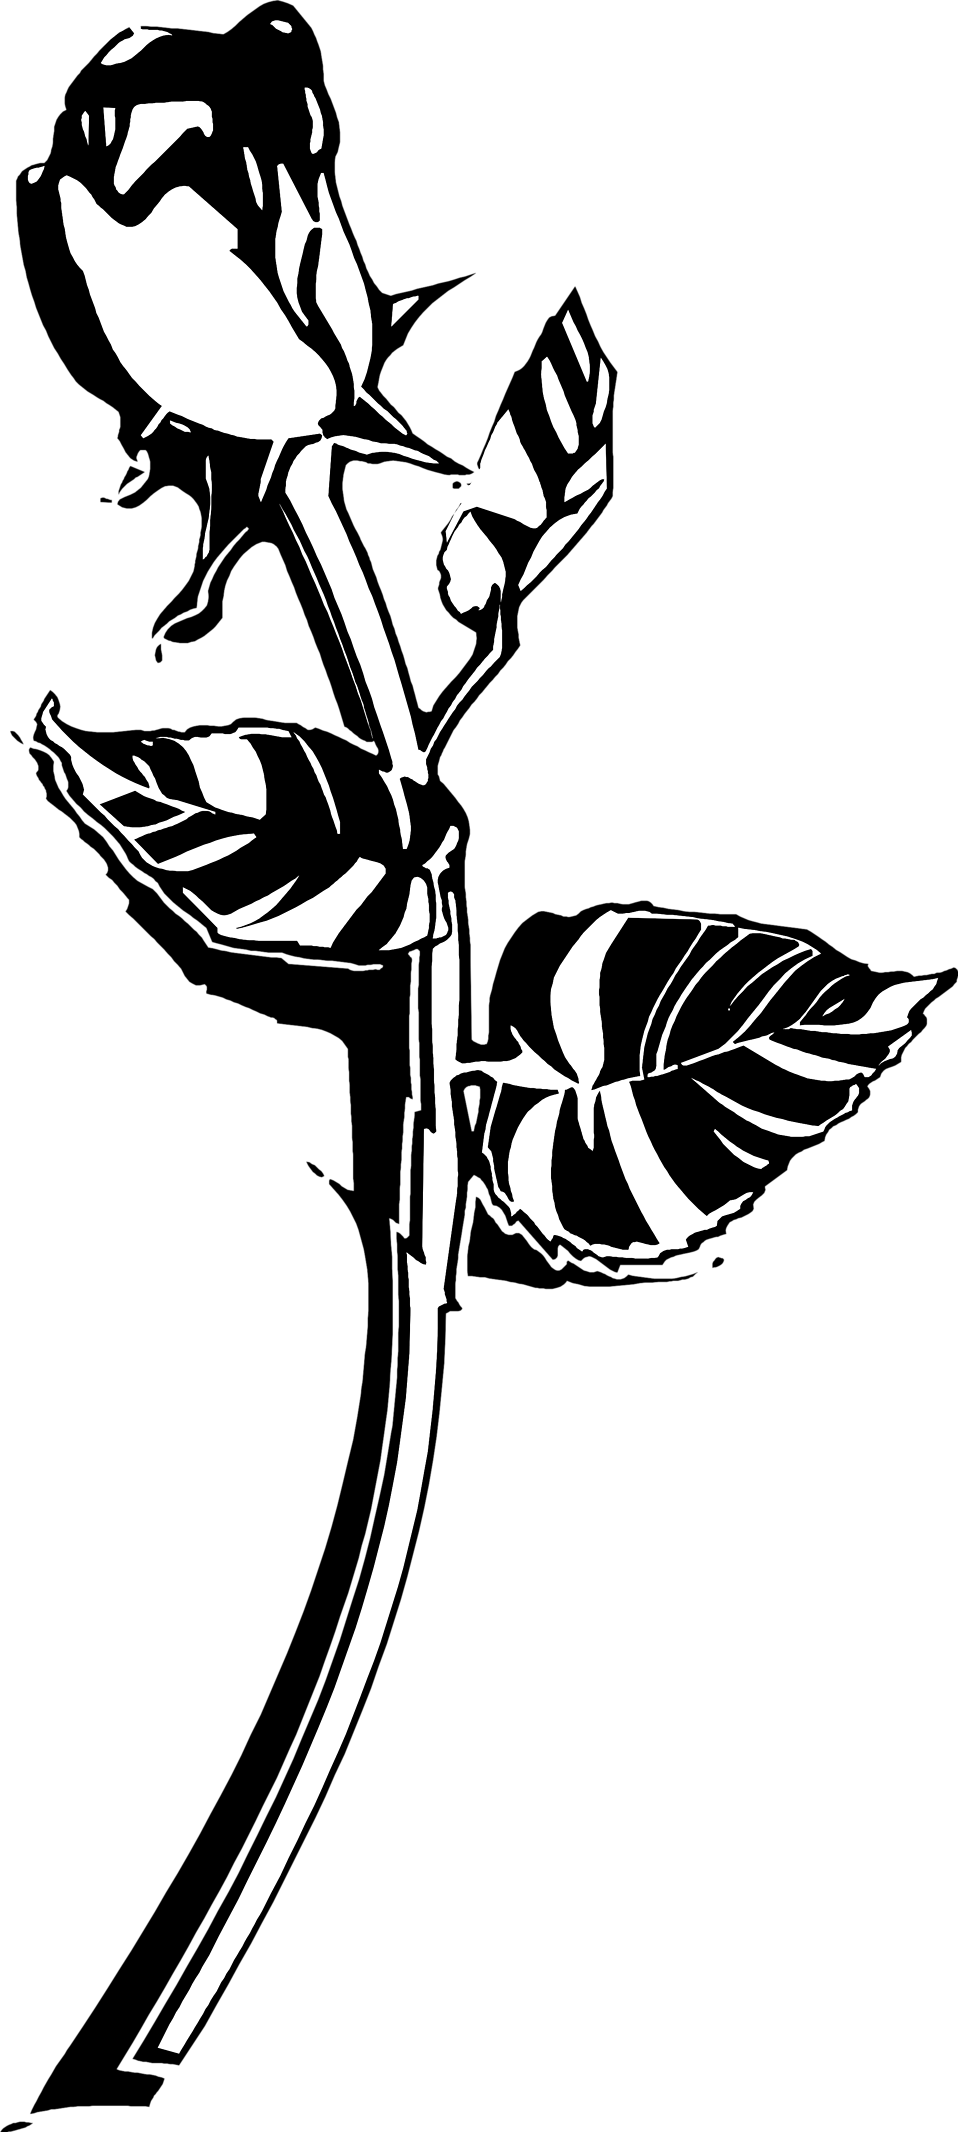 Flower stem black and white clipart picture black and white download Rose | Free Stock Photo | Illustration of a long stem rose | # 9623 picture black and white download